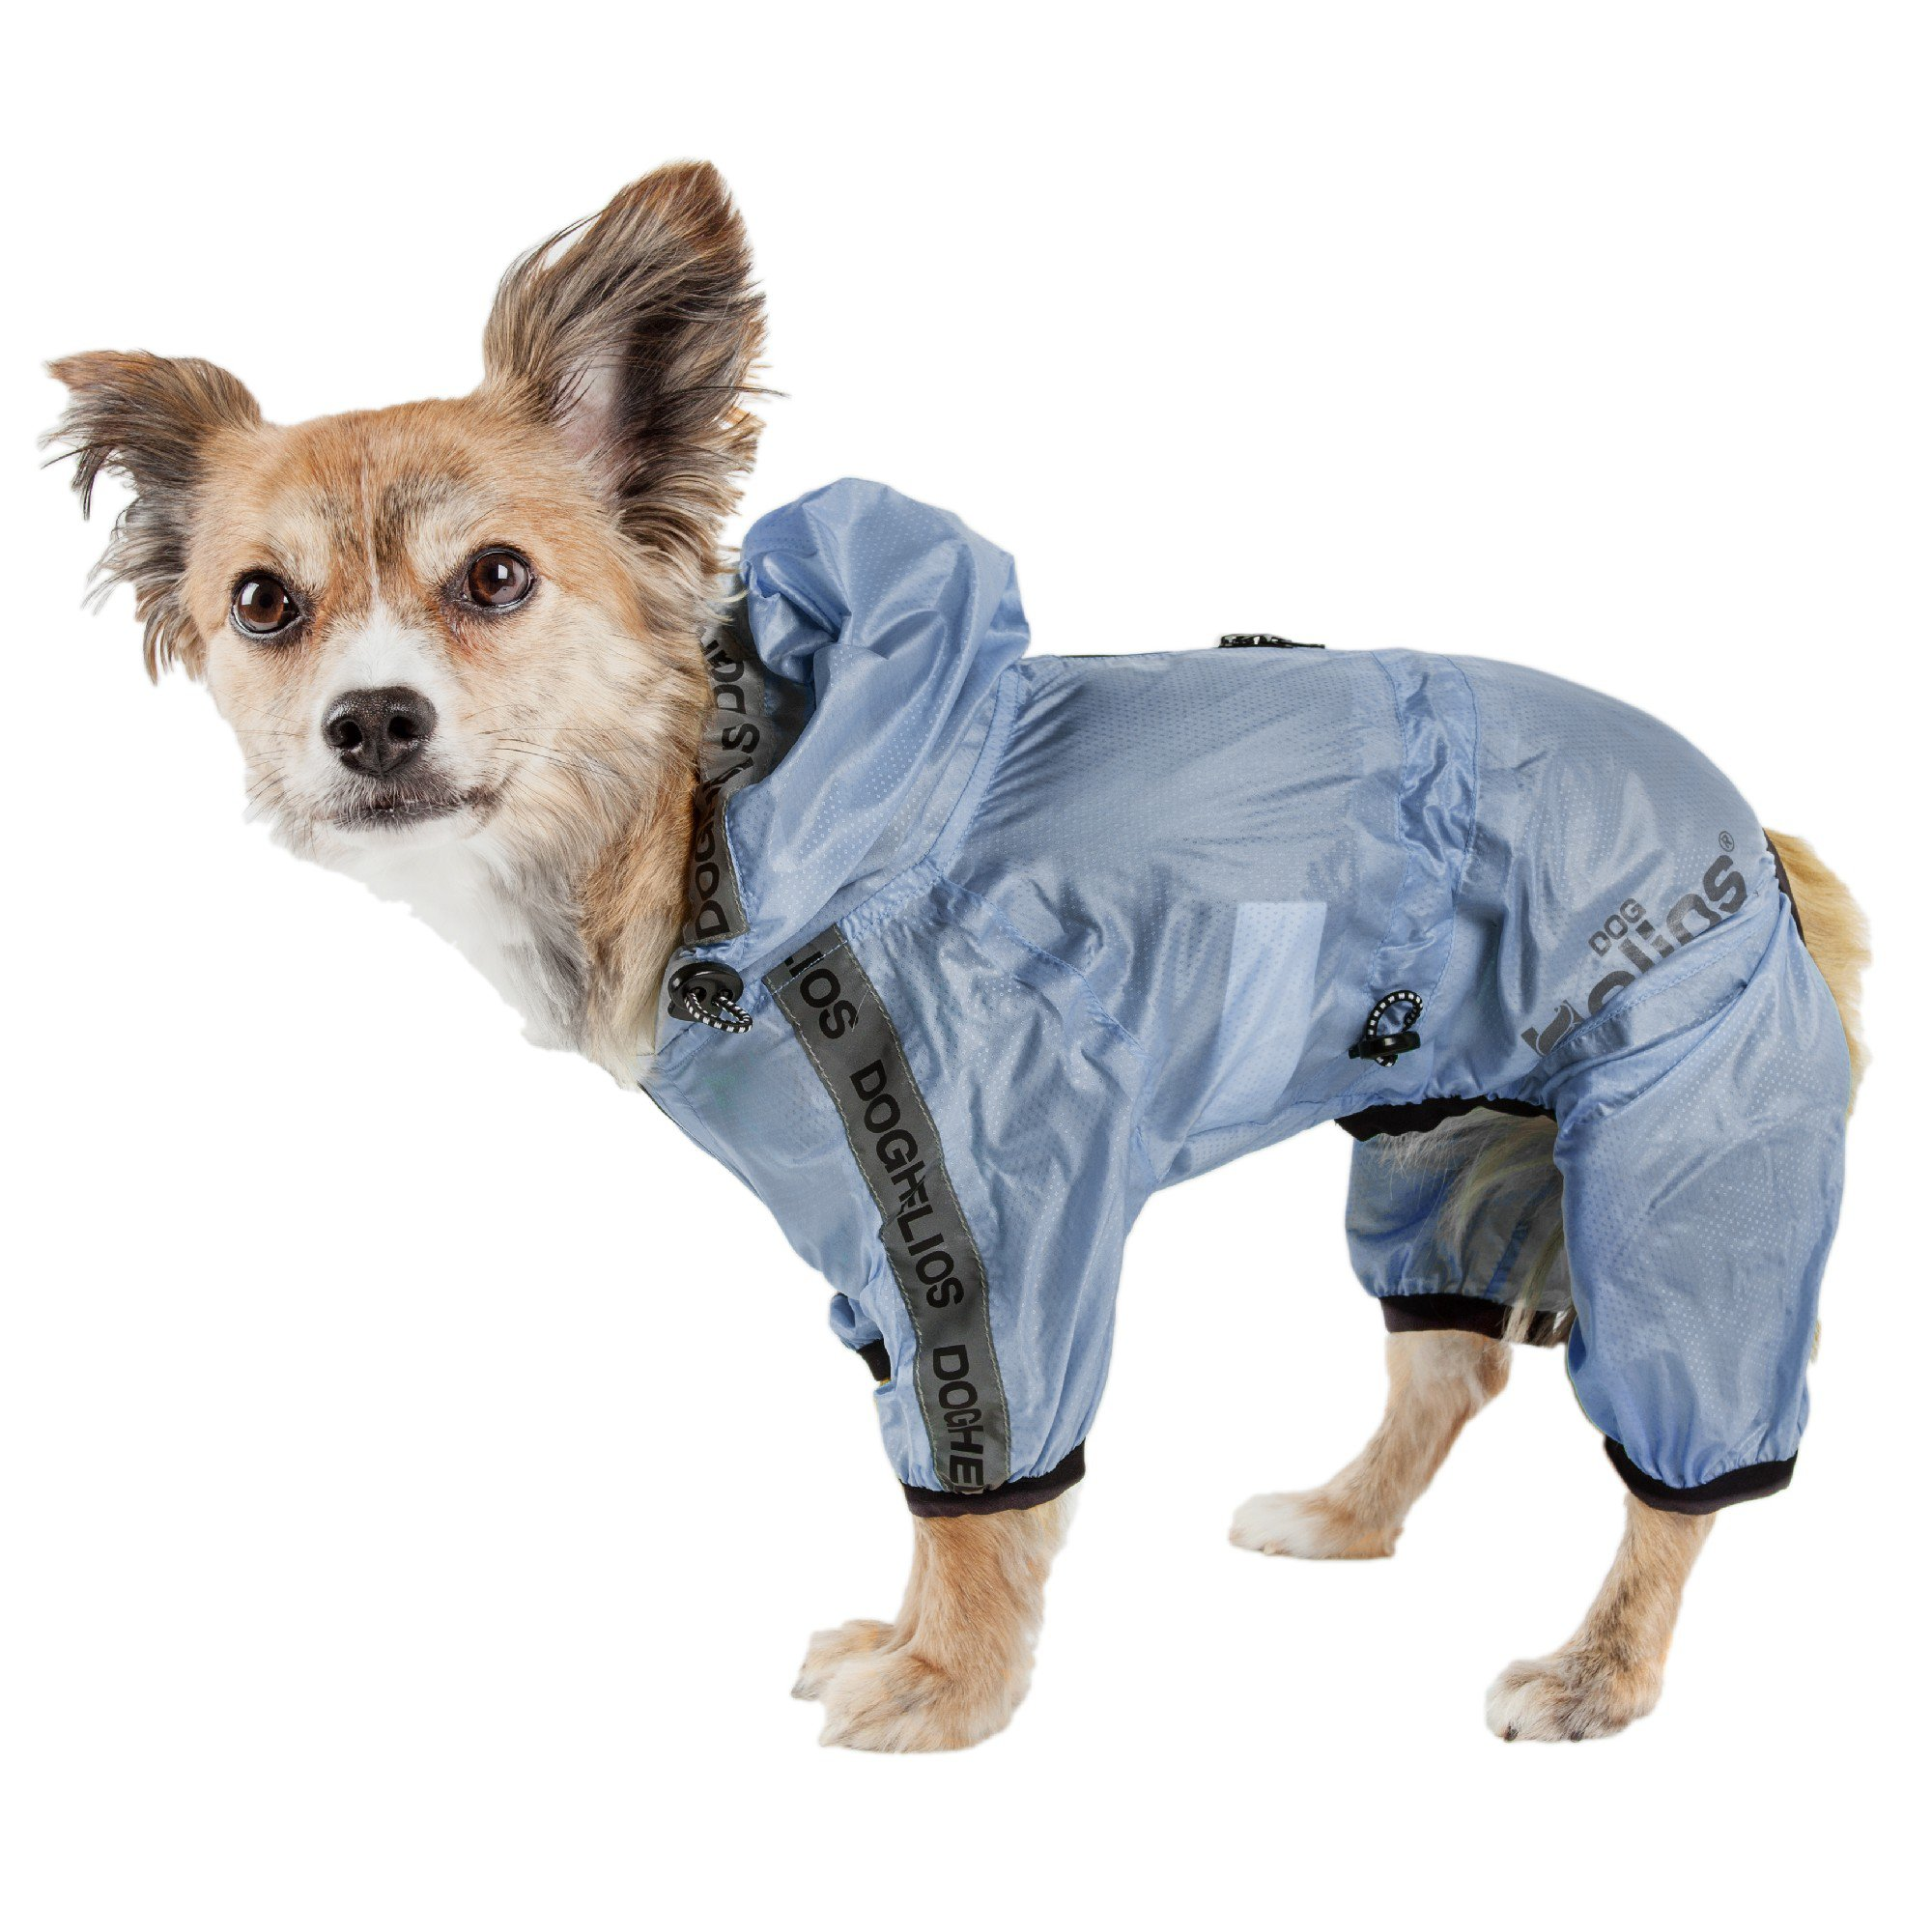 Dog Helios Torrential Shield Waterproof Multi-Adjustable Blue Dog Windbreaker Raincoat, Medium